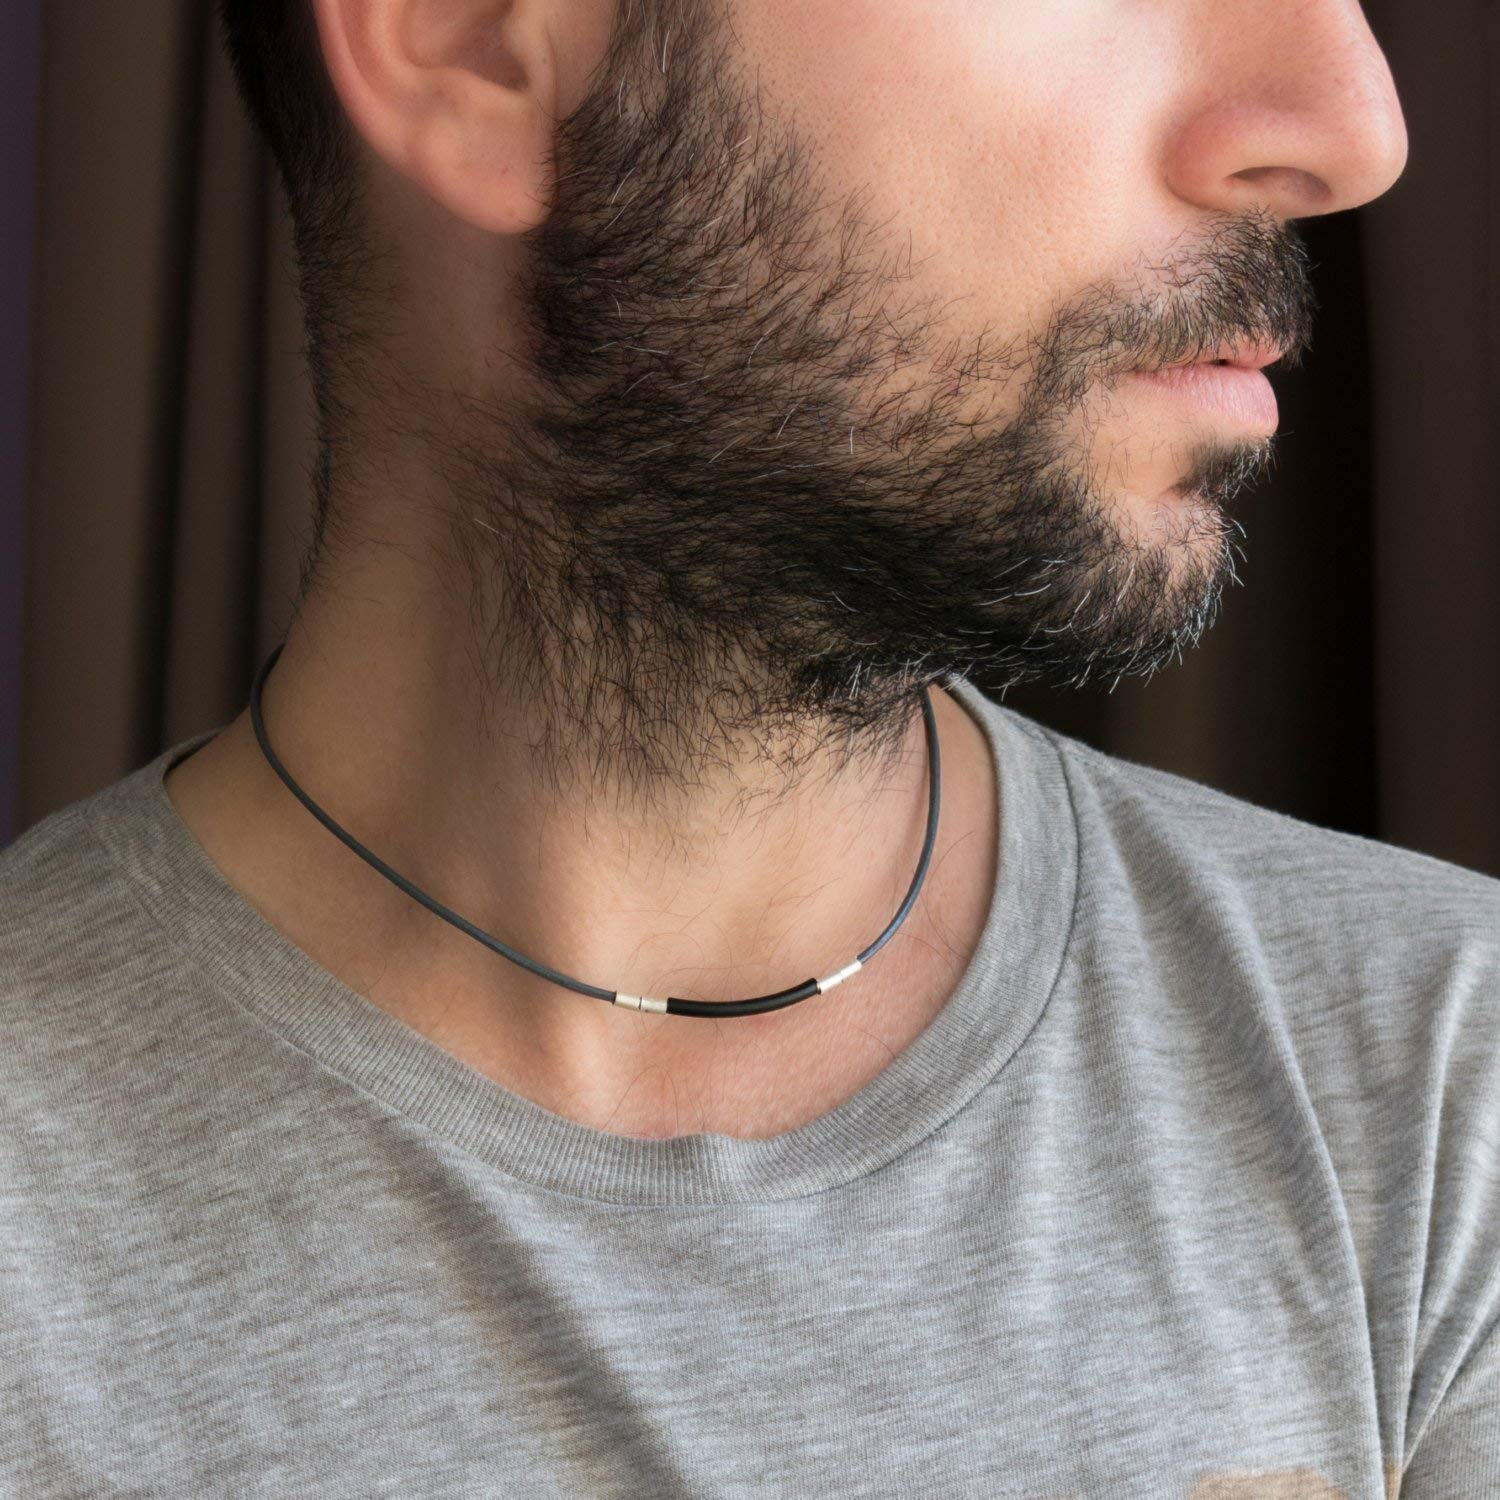 Men's Necklace - Men's Choker Necklace - Men's Leather Necklace - Men's Jewelry - Guys Jewelry - Guys Necklace - Necklaces For Men - Jewelry For Men